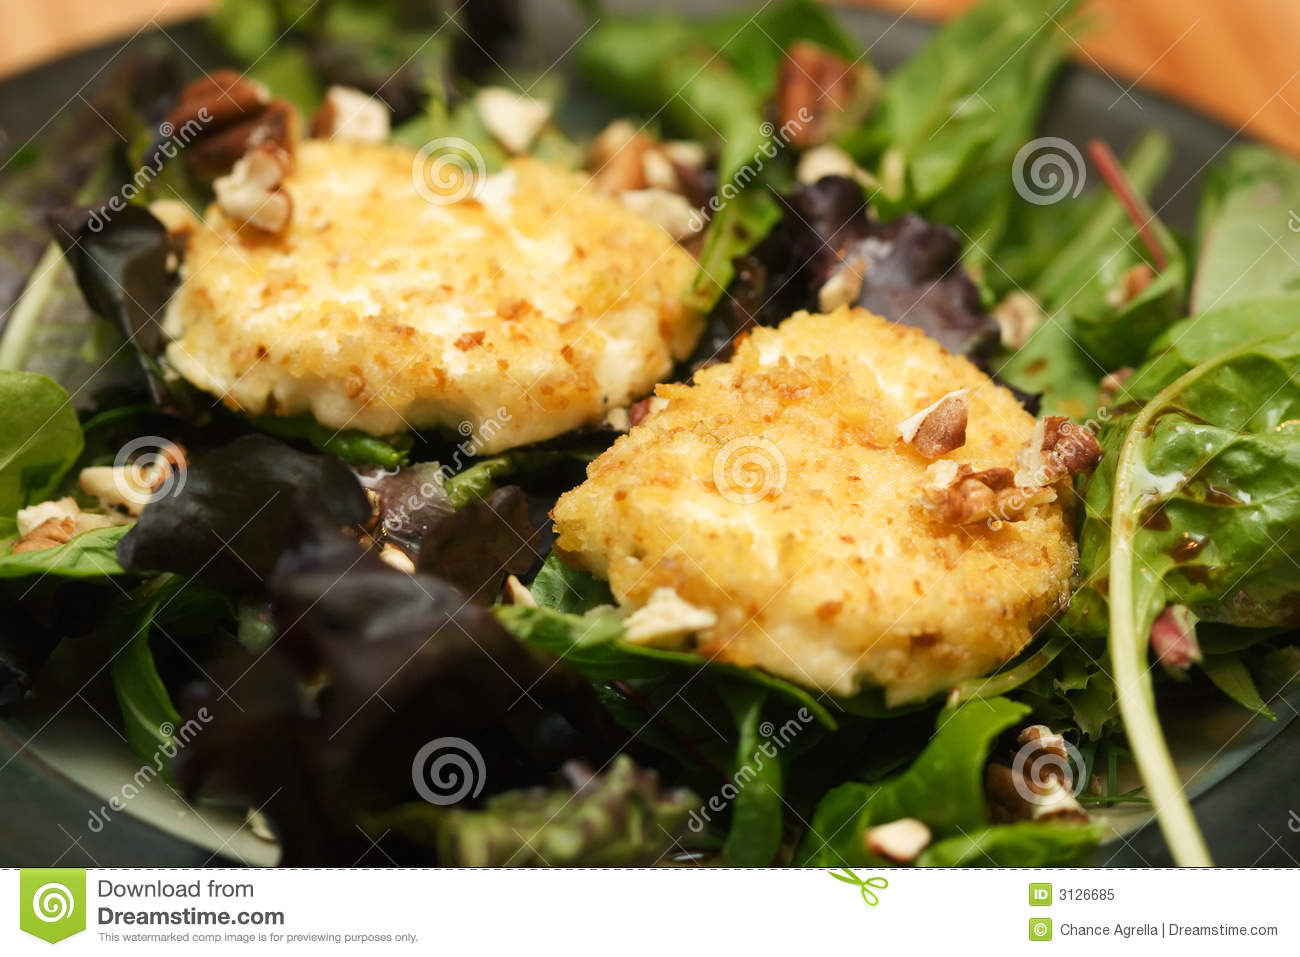 Salad With Fried Goat Cheese Royalty Free Stock Photo - Image: 3126685